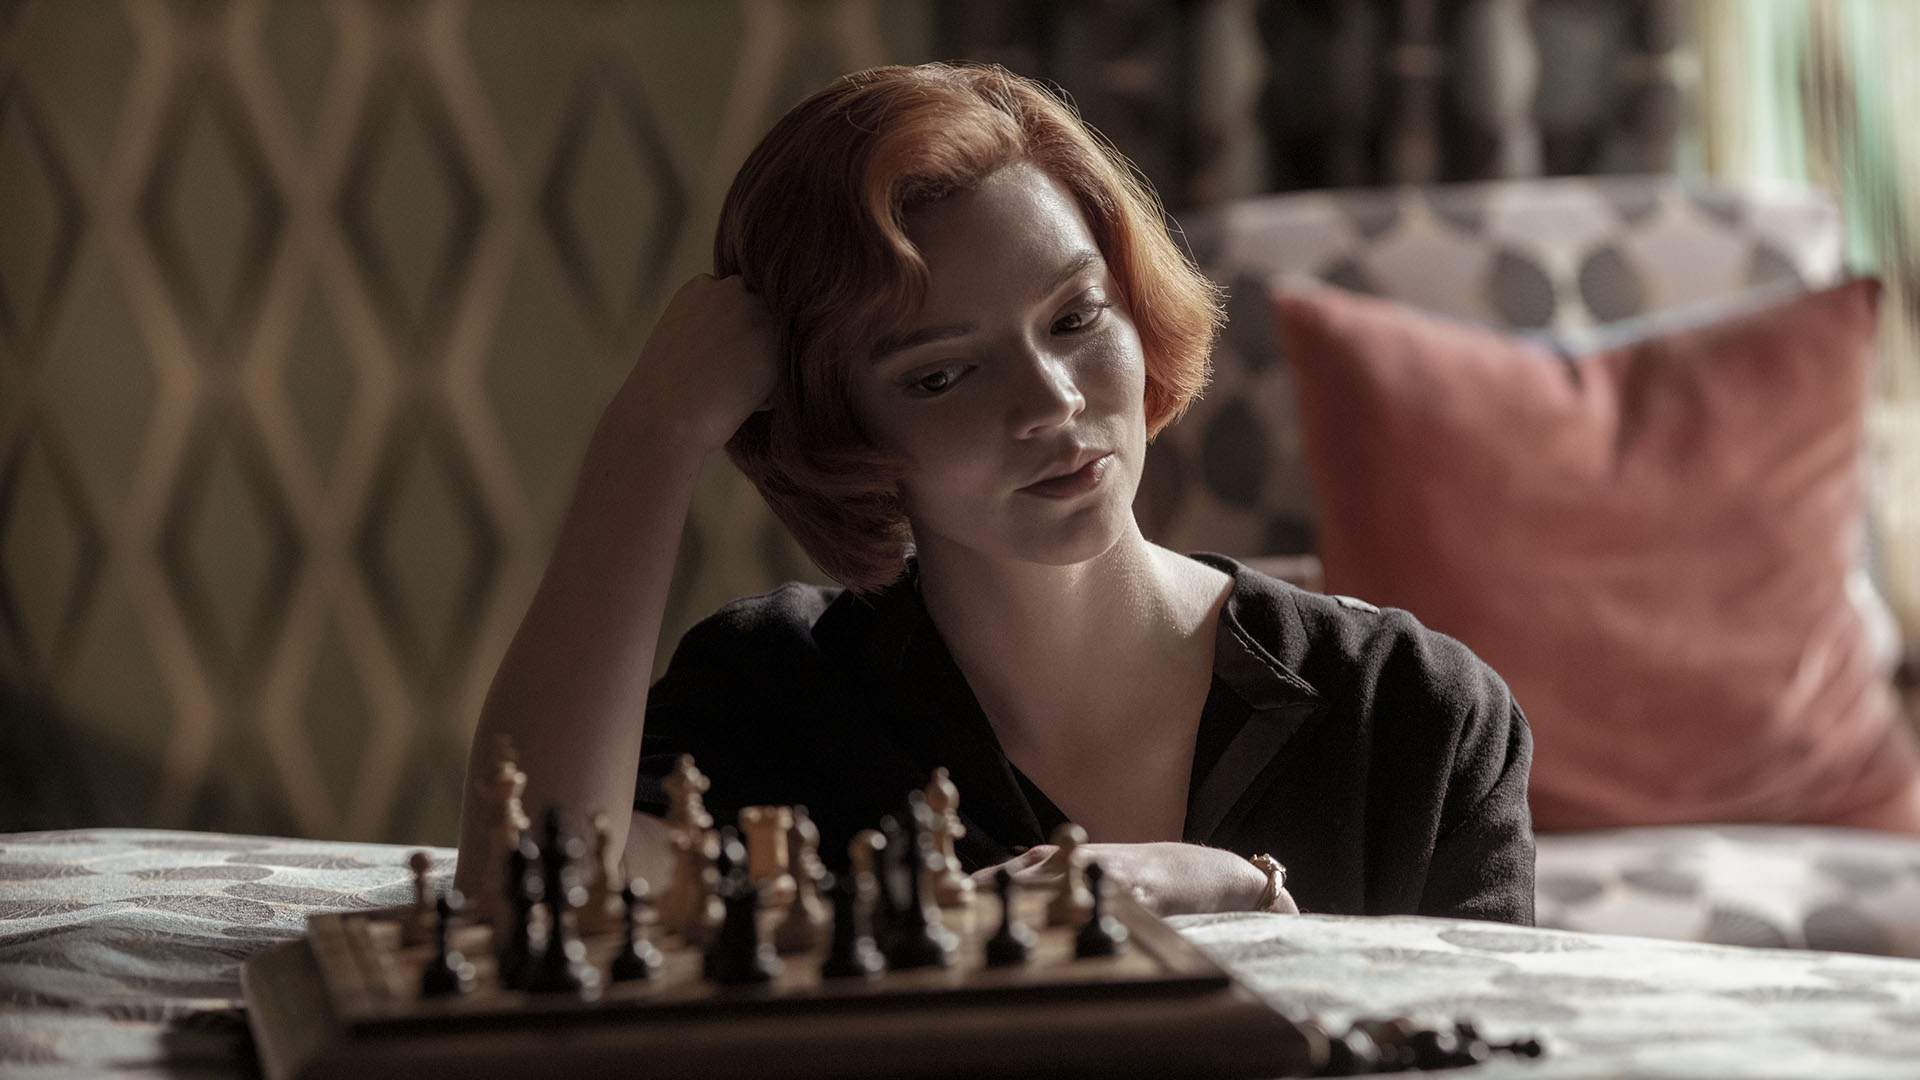 Netflix Must-See 'The Queen's Gambit' Is the Involving Chess Thriller You Didn't Know You Needed